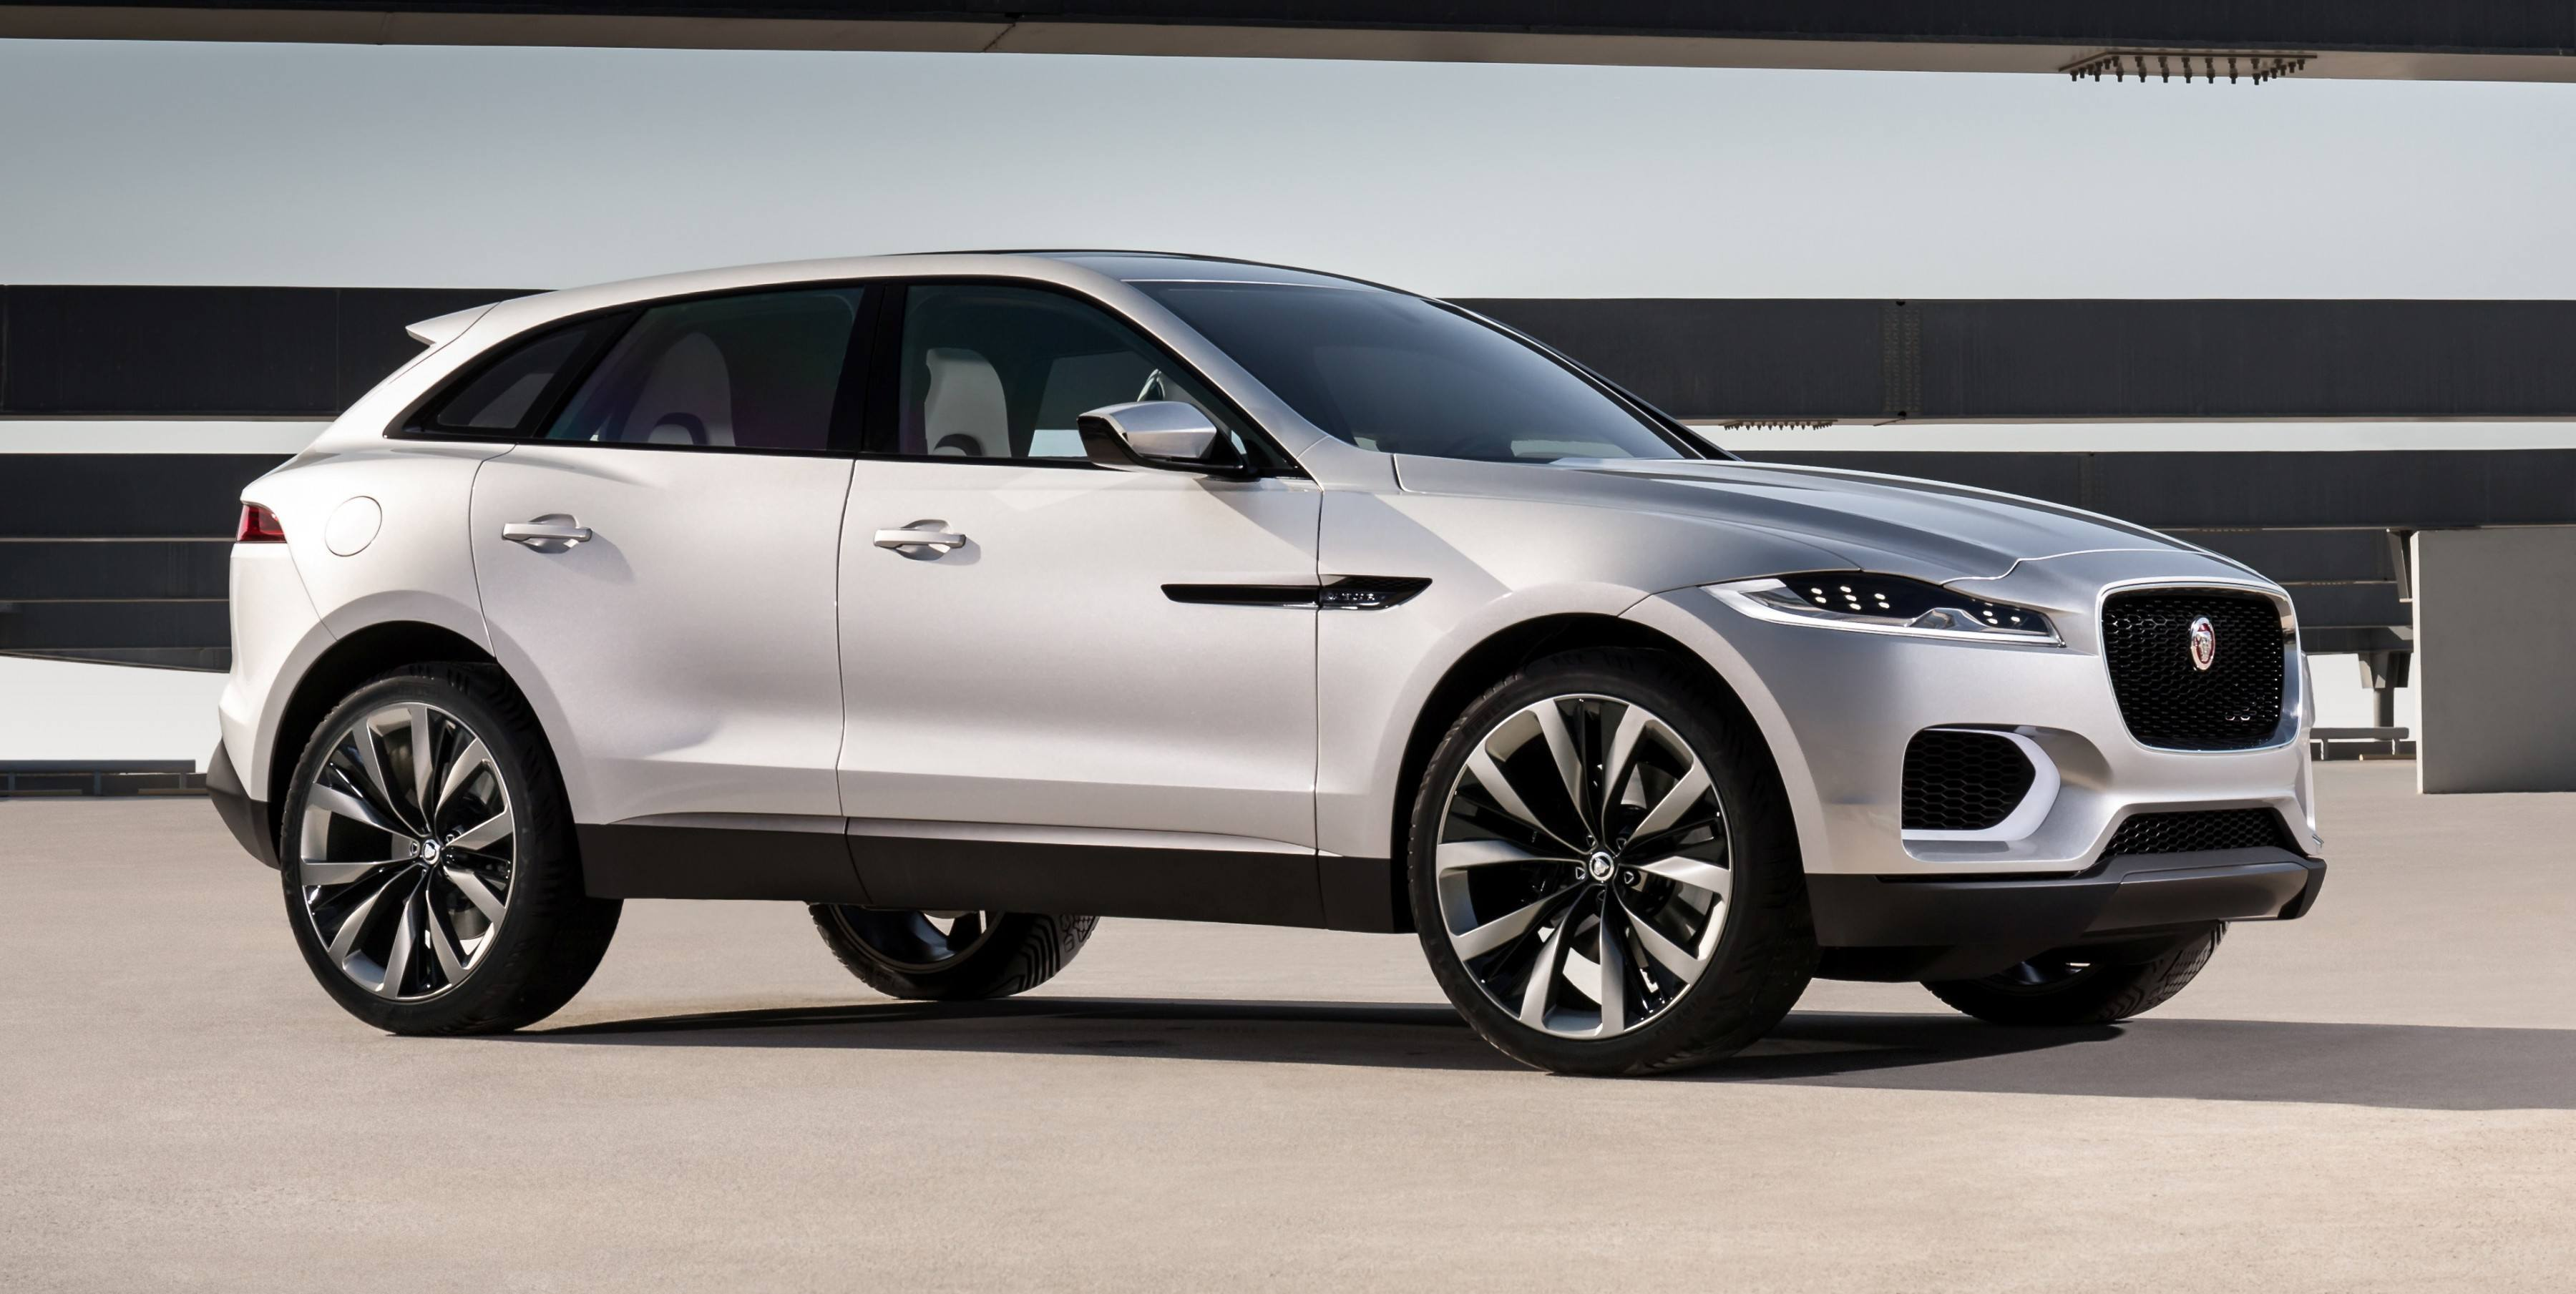 2016 JAGUAR XQ-Type Preview - C-X17 SUV in 150 Photos, 4 ...